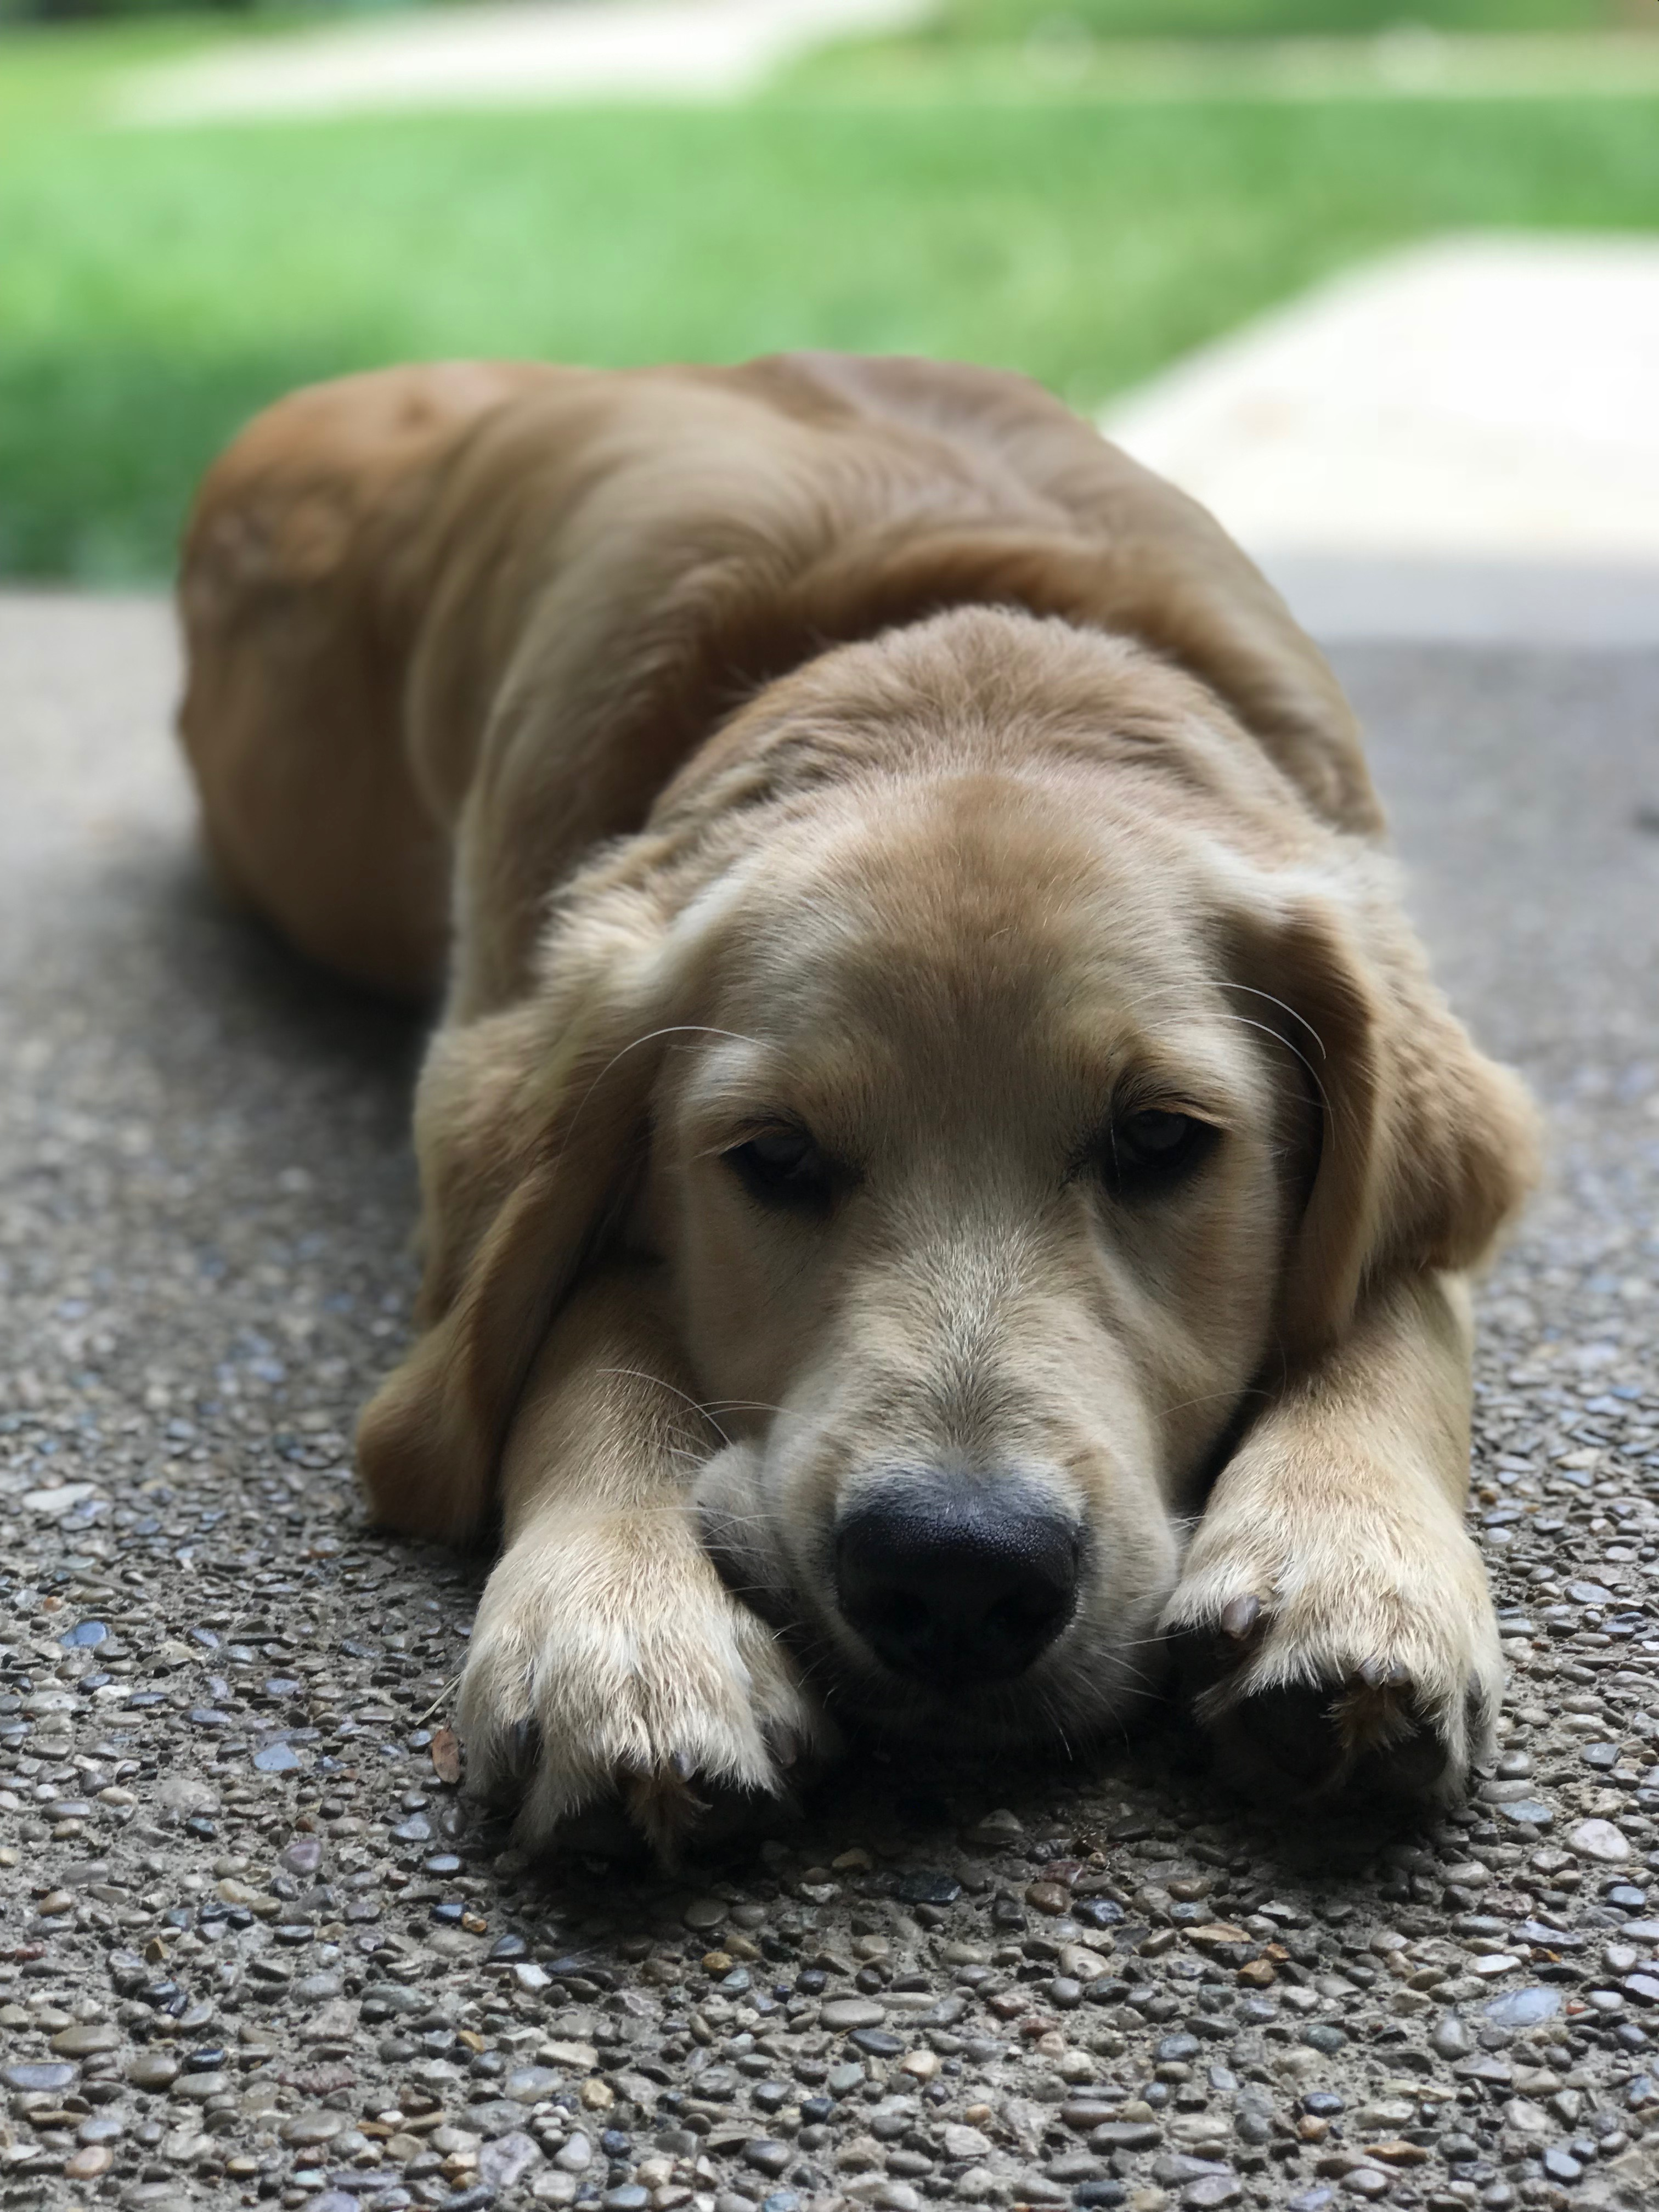 Puppy Laying in Yard